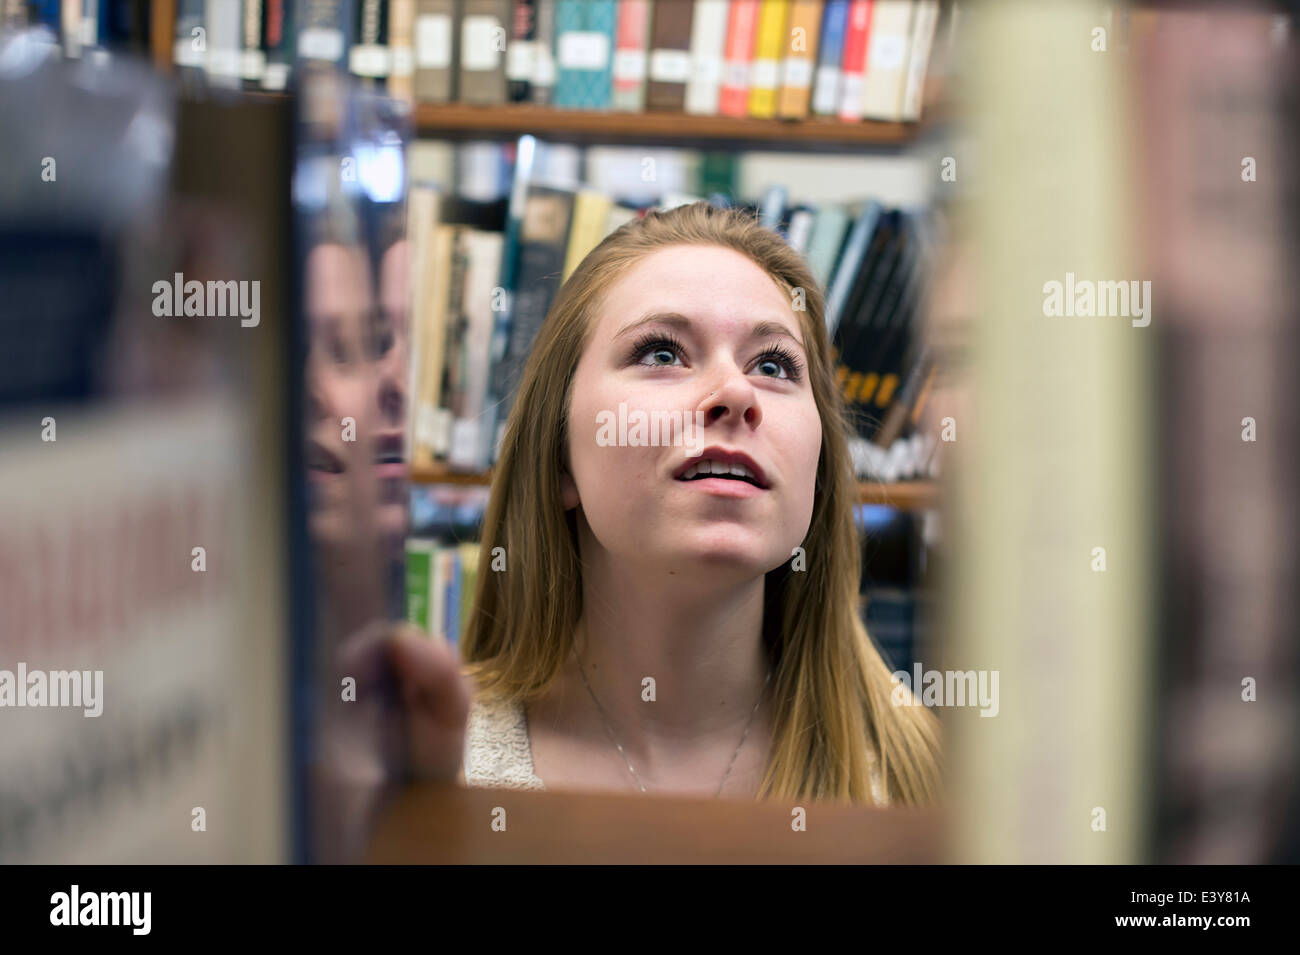 Young woman choosing book in library Photo Stock